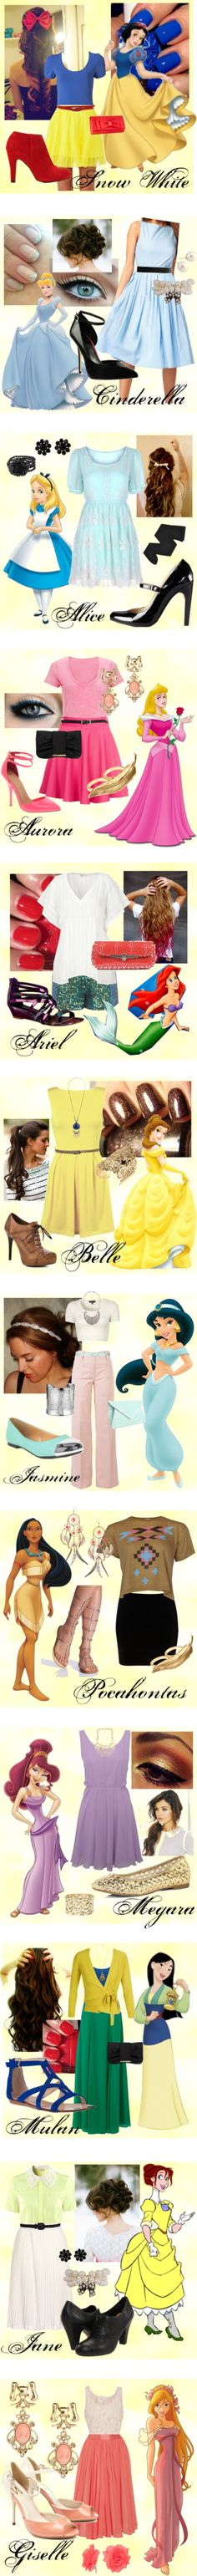 disney outfits, disney inspired outfits, disney princesses, princess outfits, dress up, white outfits, disney princess outfit ideas, halloween, snow white